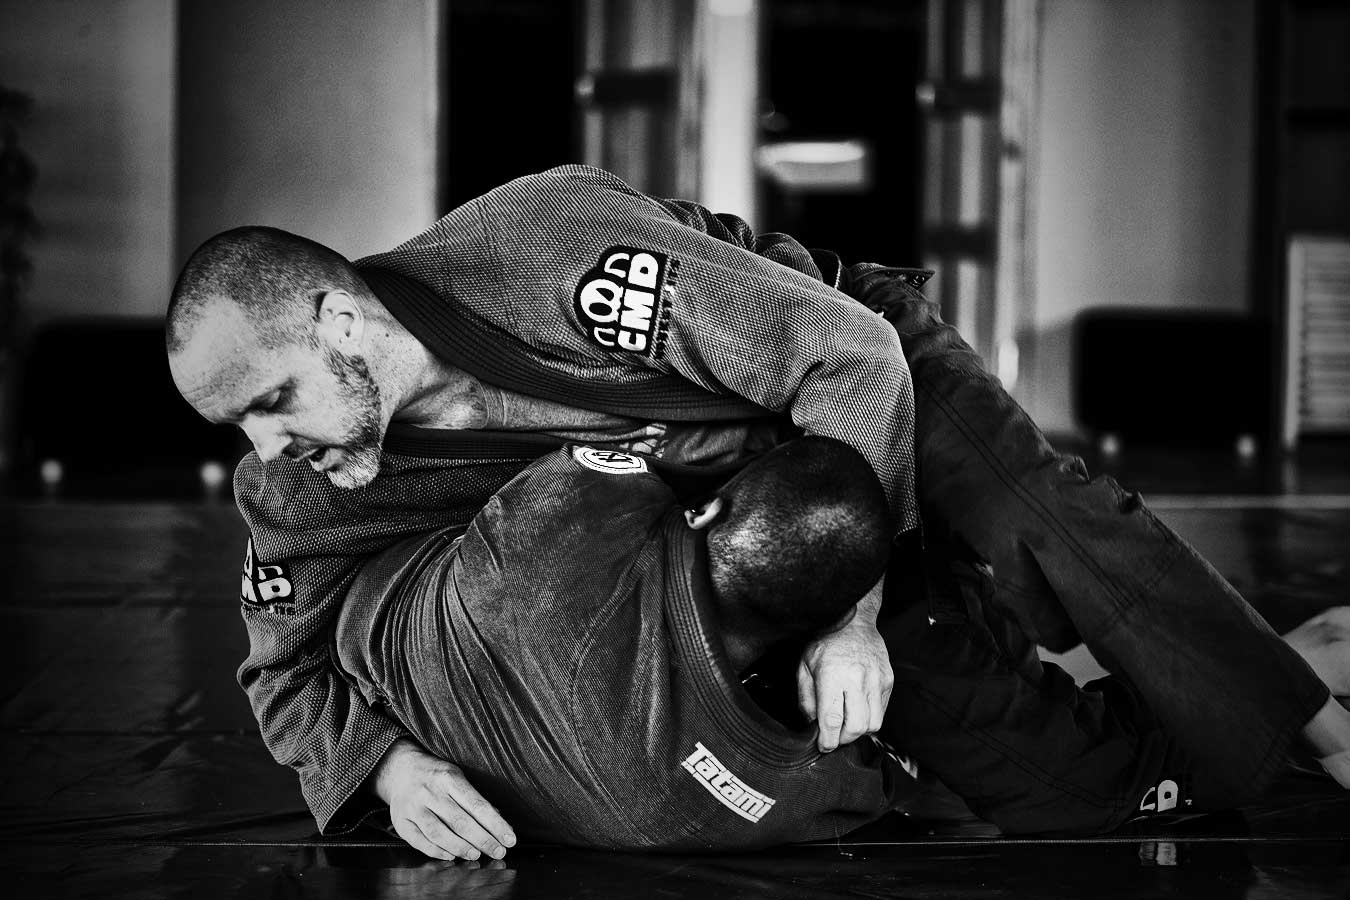 Just A Guy Doing Jiu-Jitsu